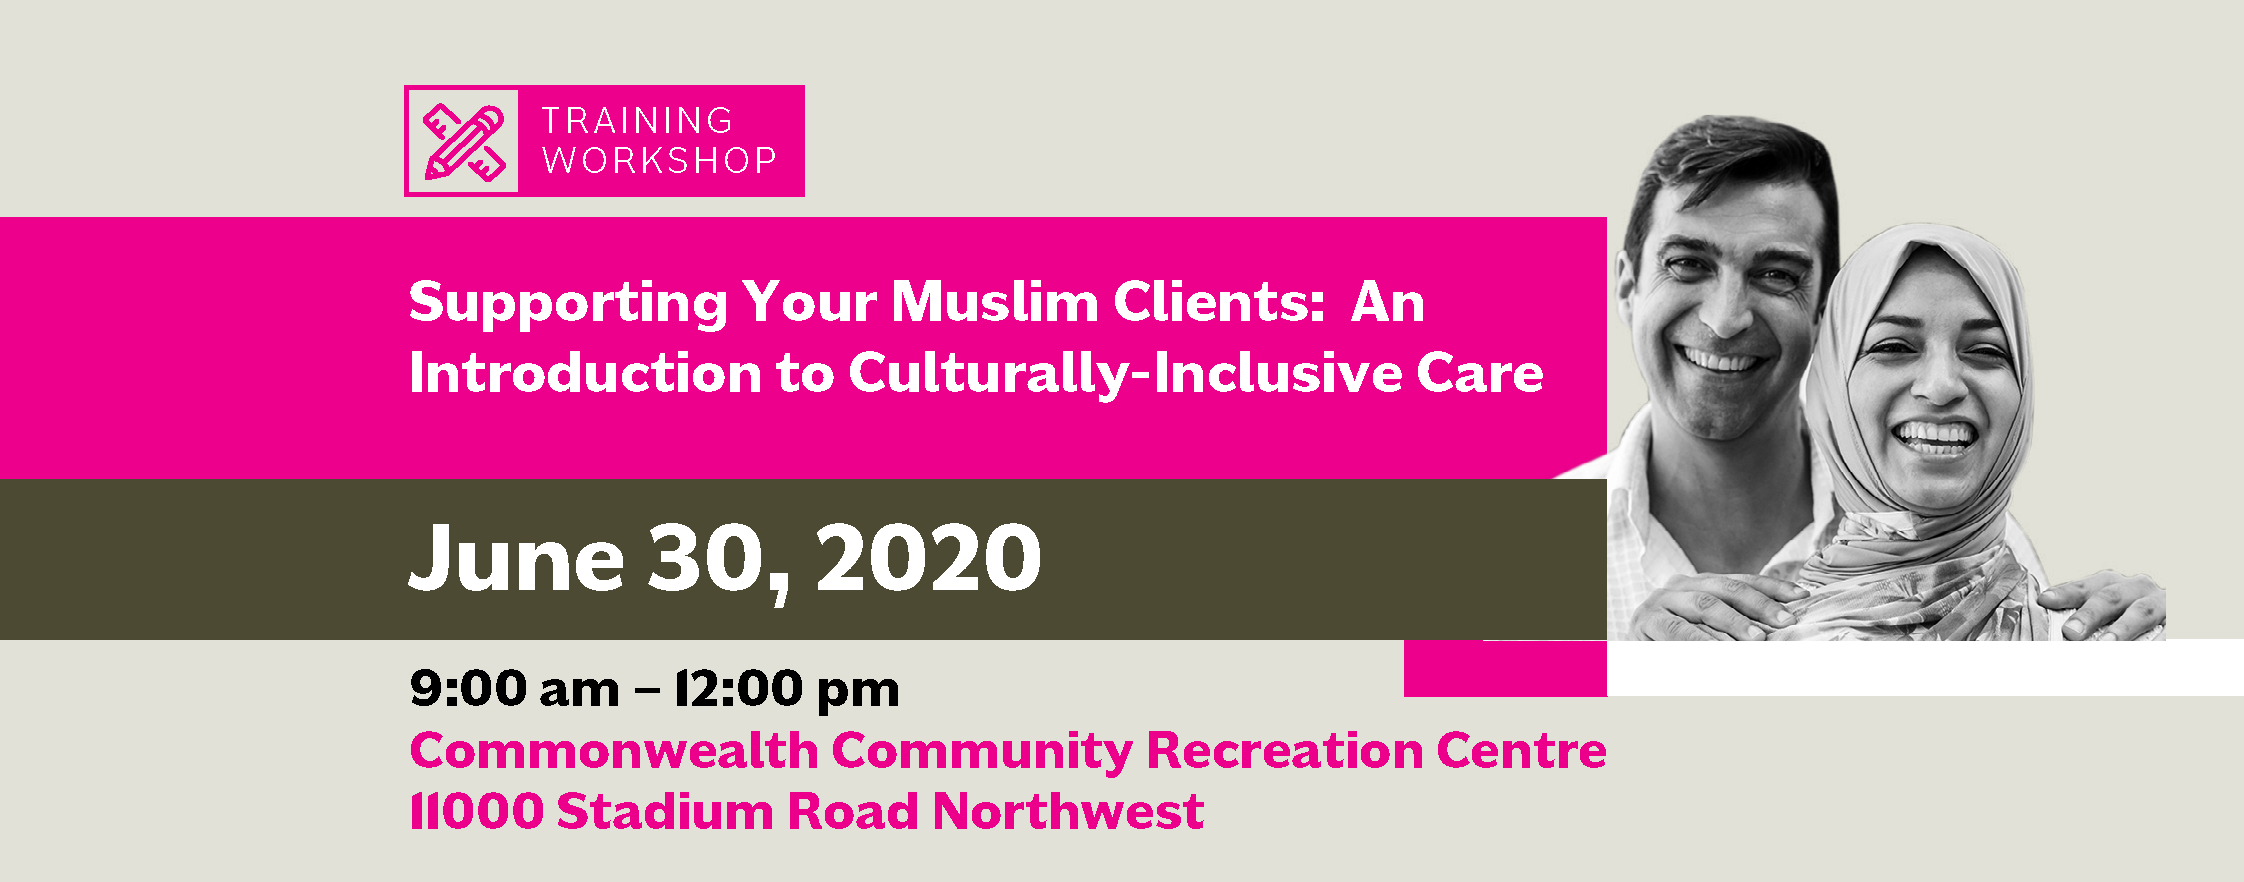 Supporting Your Muslim Clients (Jun 30, 2020)